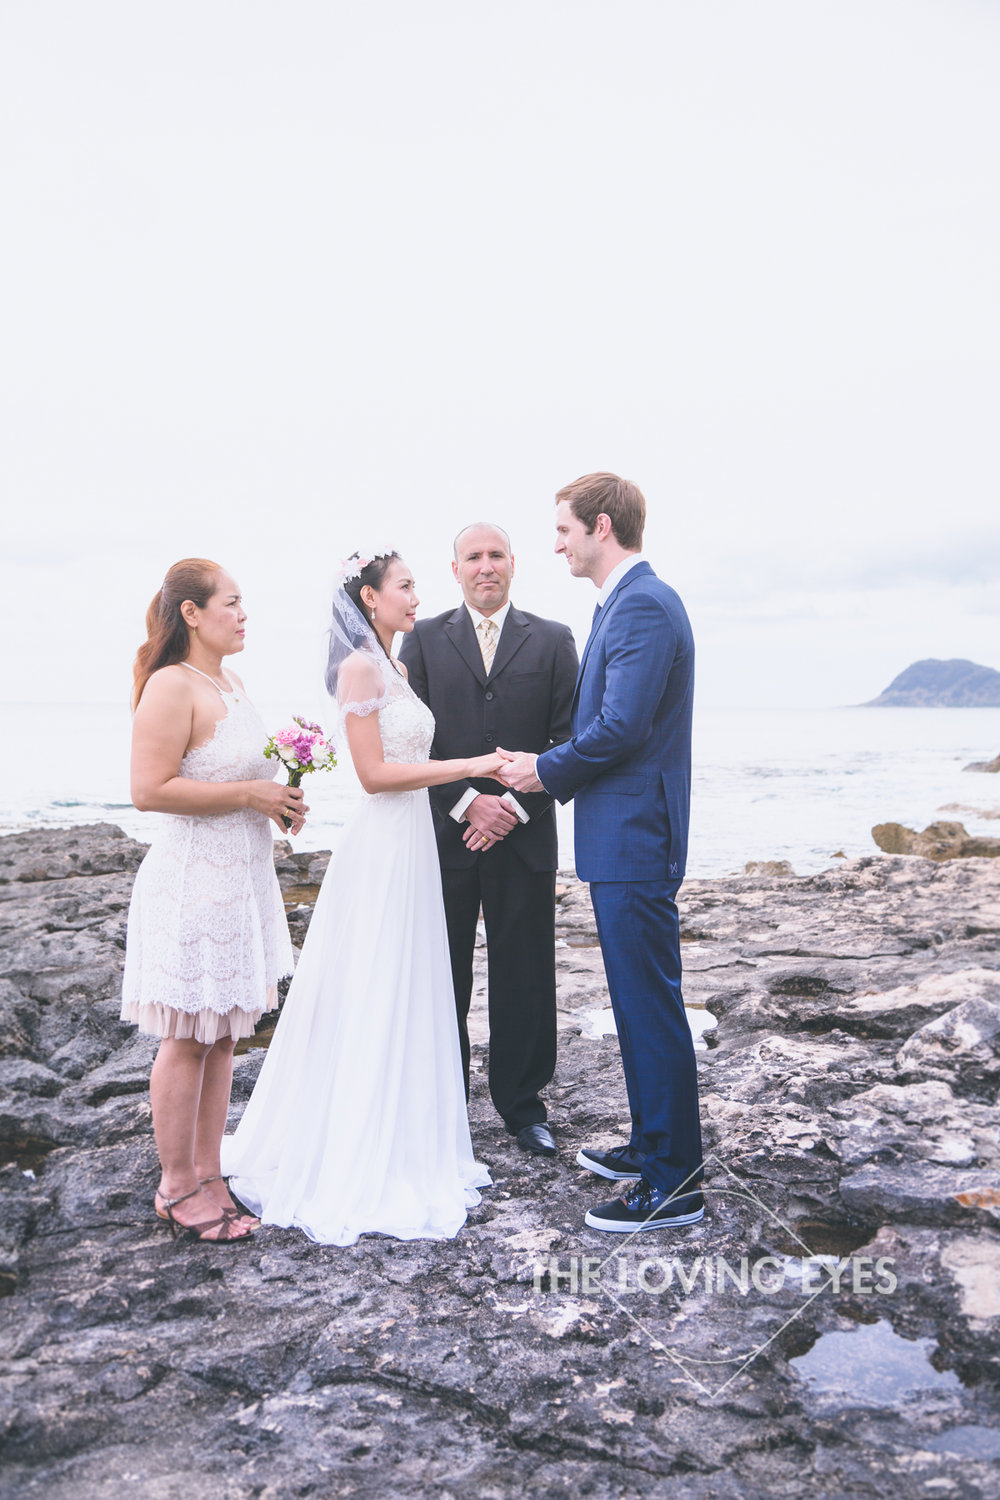 Intimate wedding ceremony at the lagoon near the Four Seasons Resort at Ko Olina